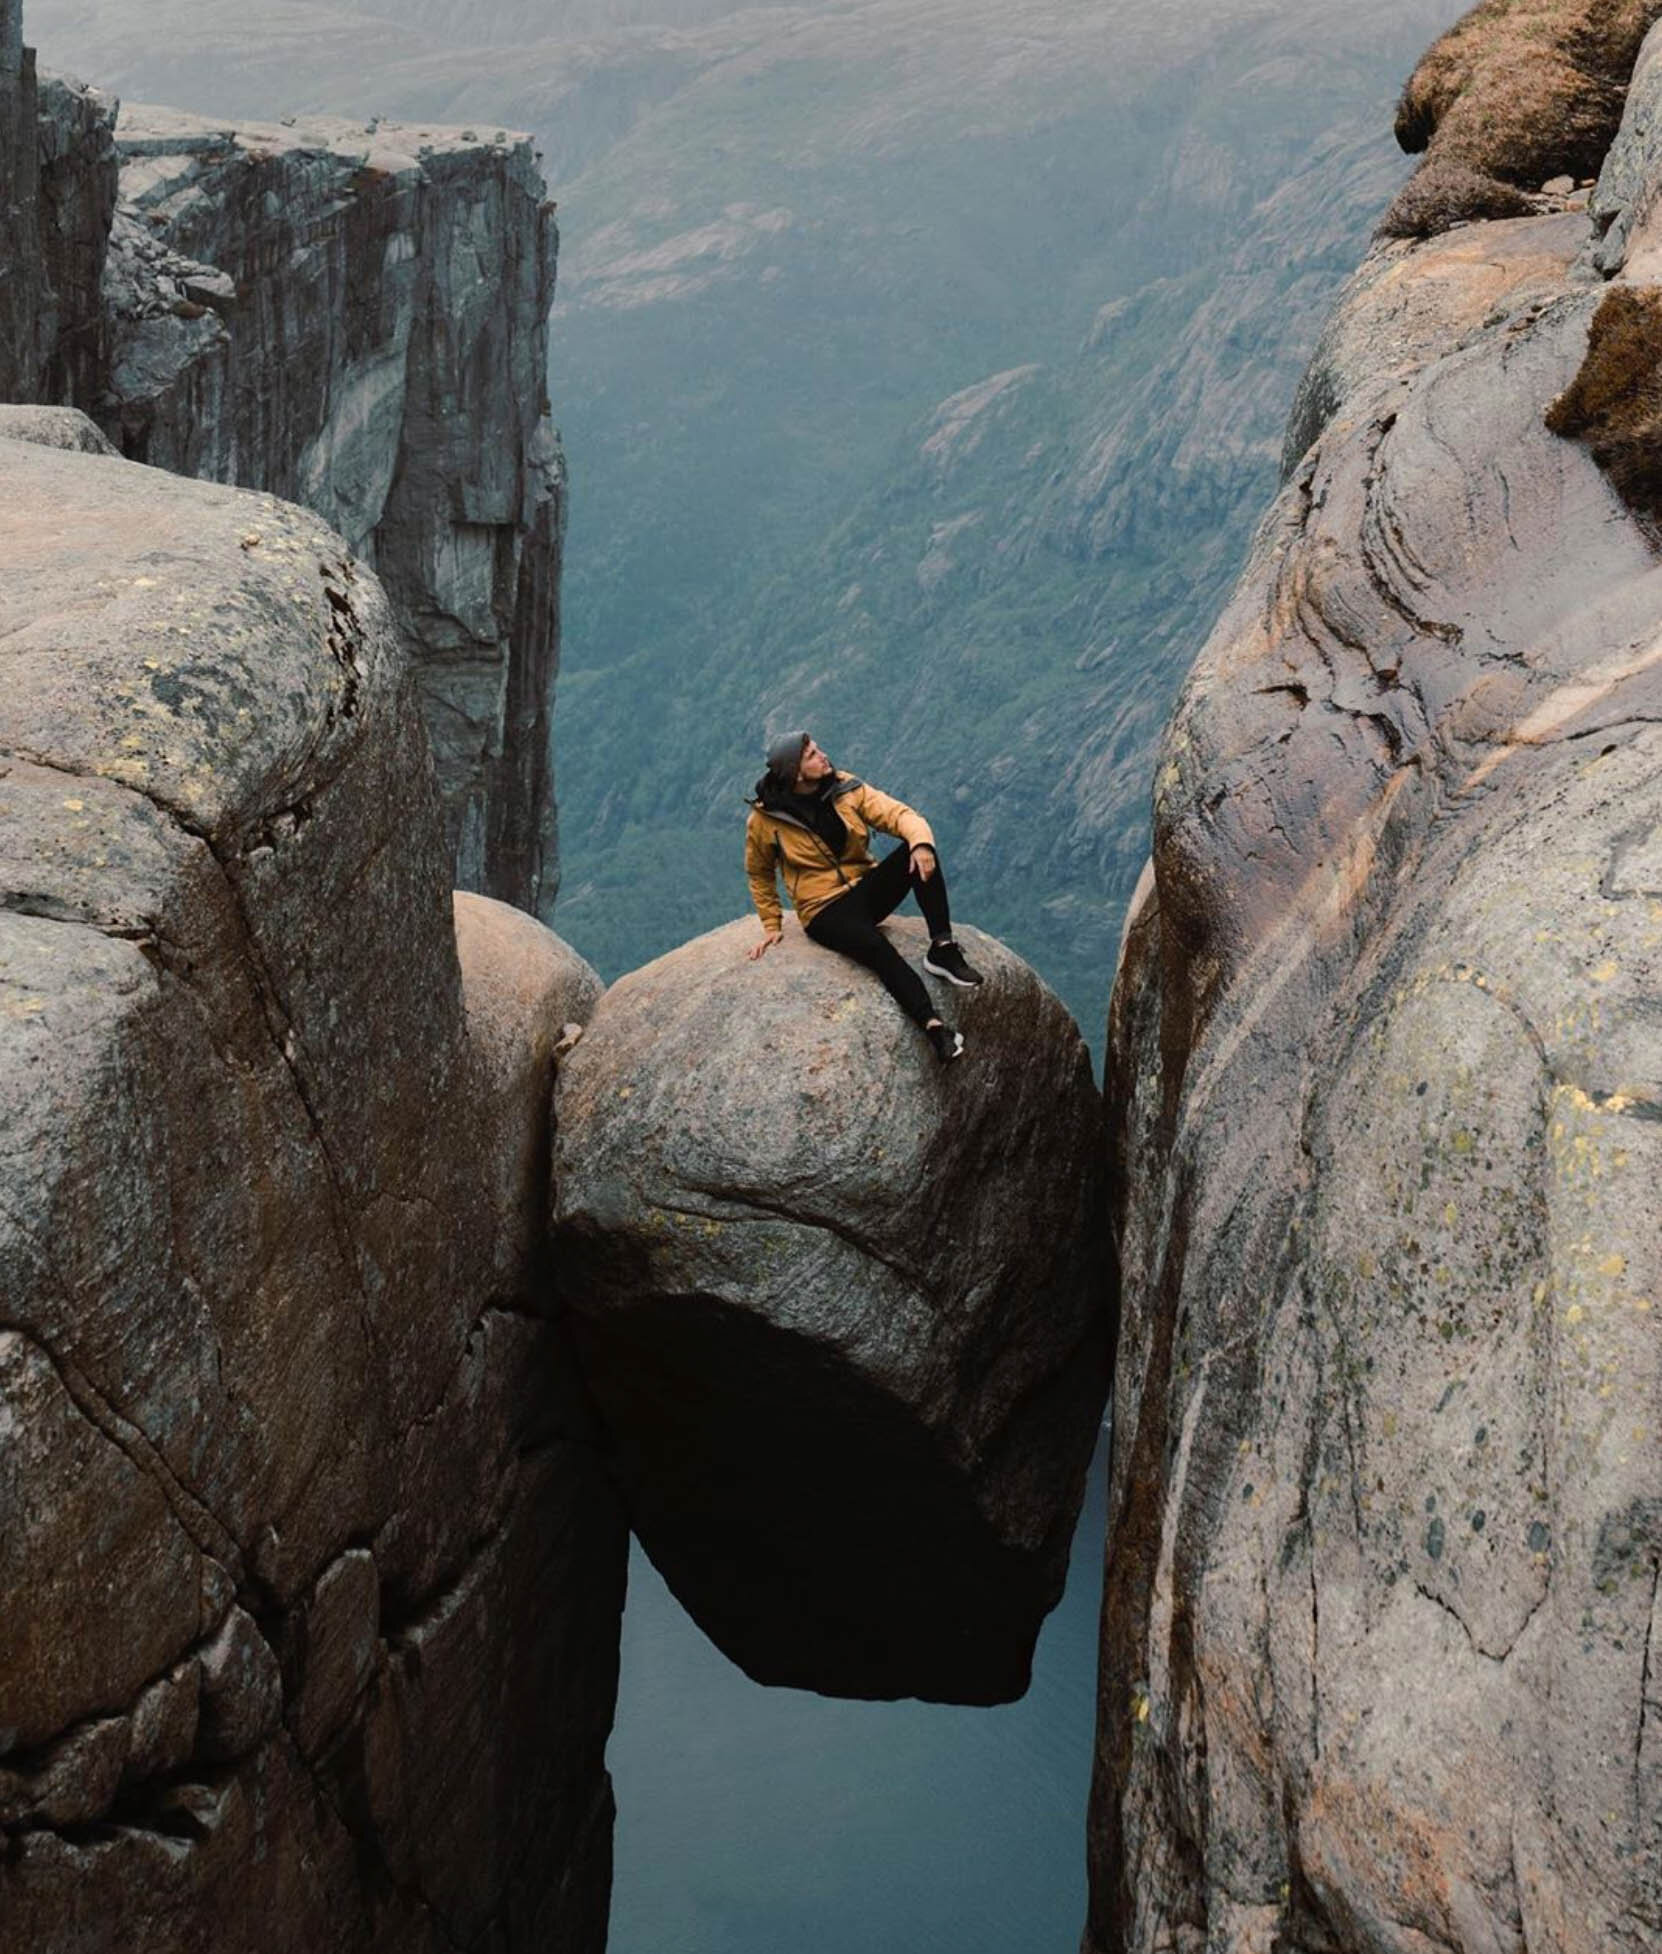 Lost LeBlanc on the rock at Kjerag, Norway